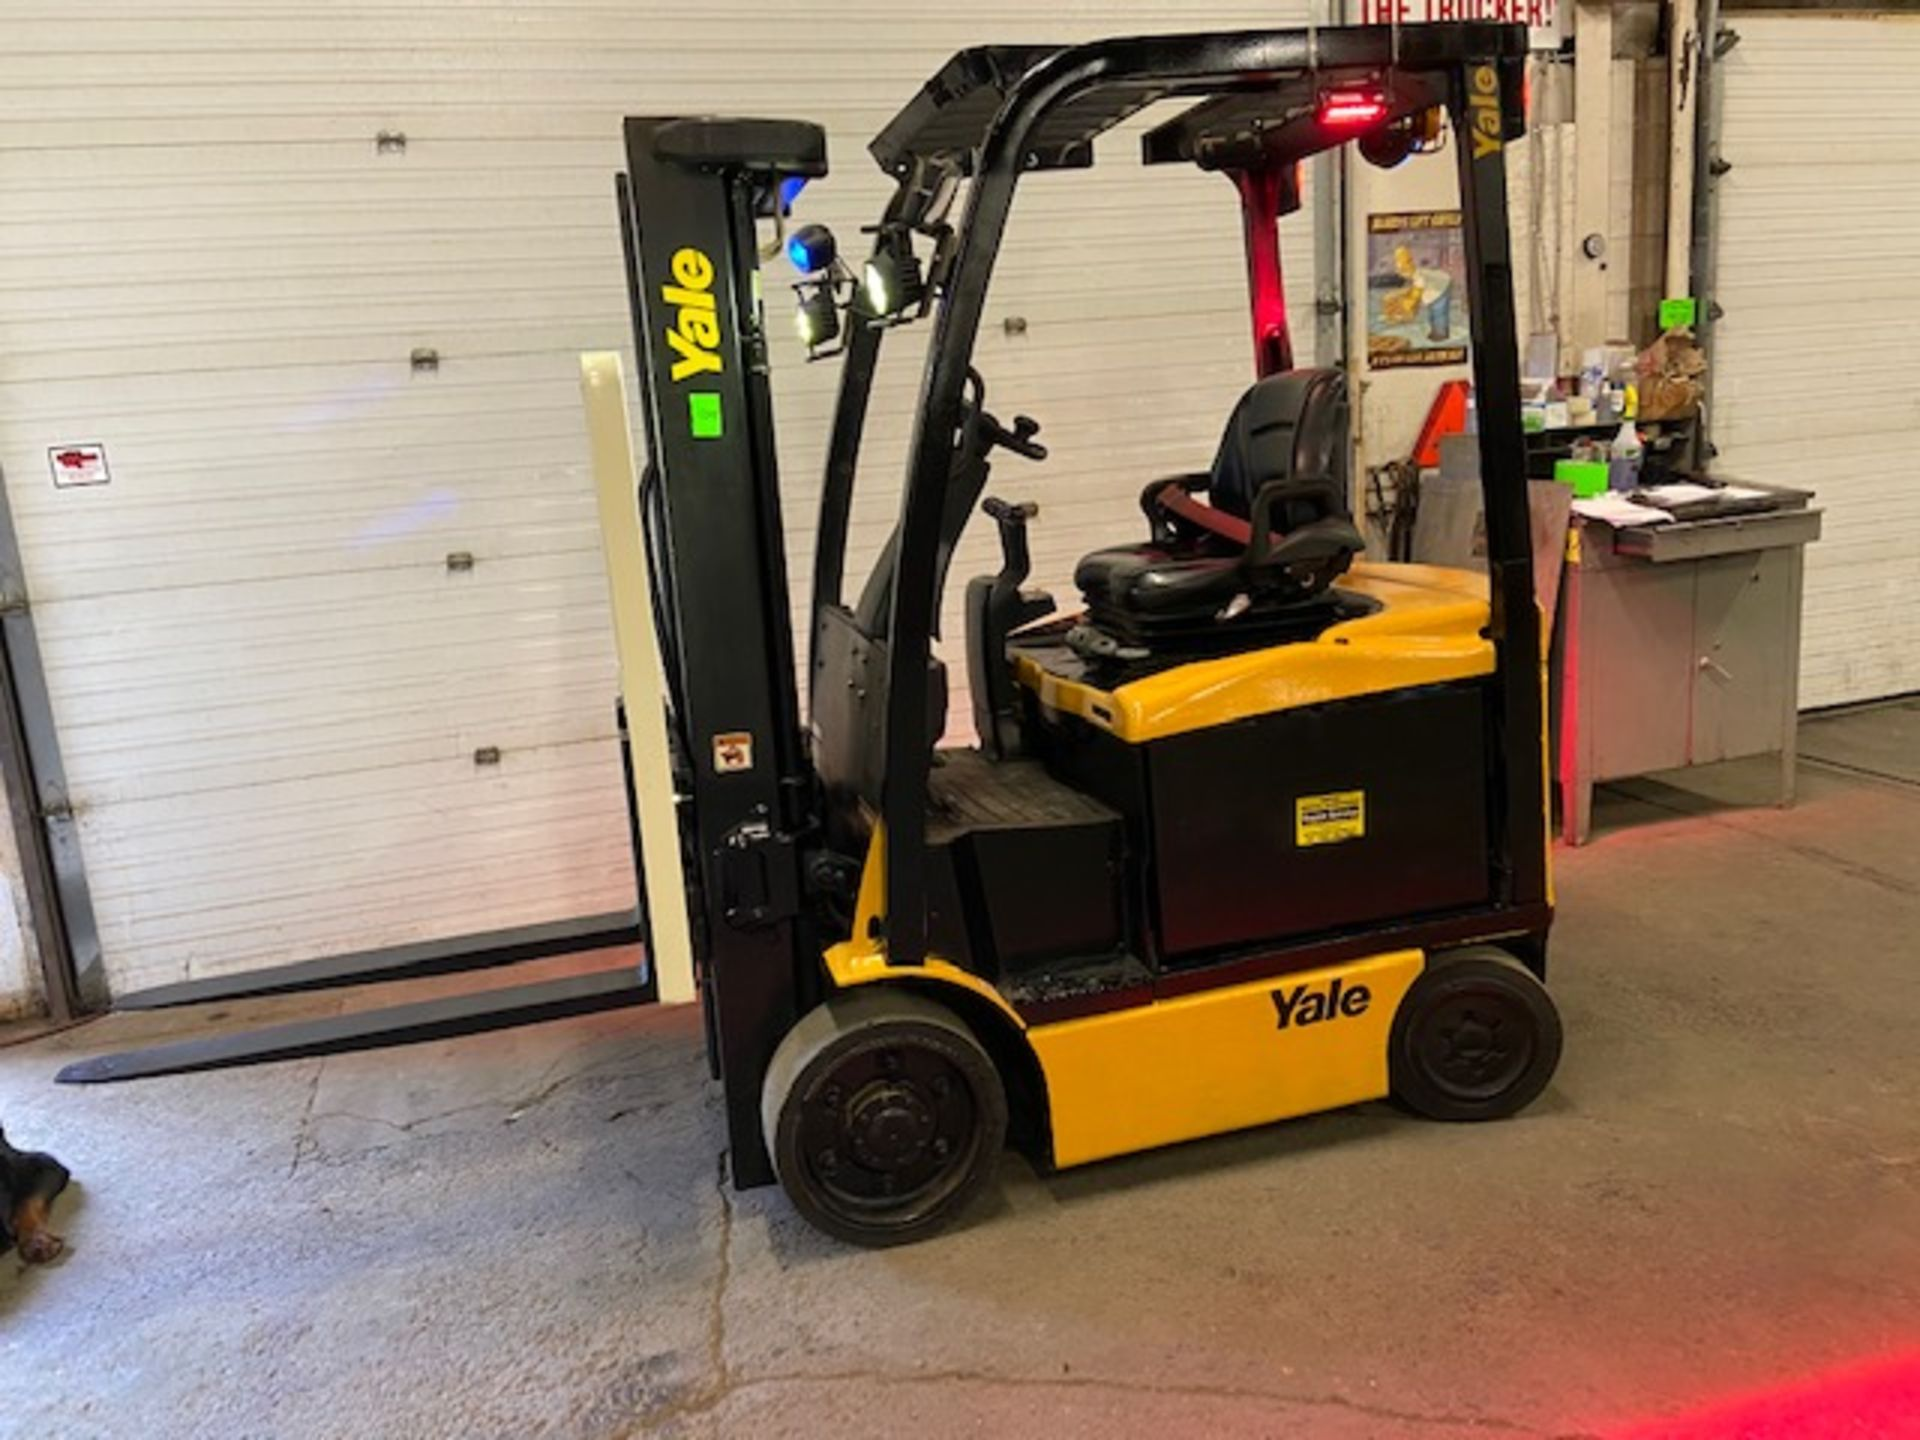 FREE CUSTOMS - 2015 Yale 5000lbs Capacity Forklift Electric with 3-STAGE MAST with sideshift MINT